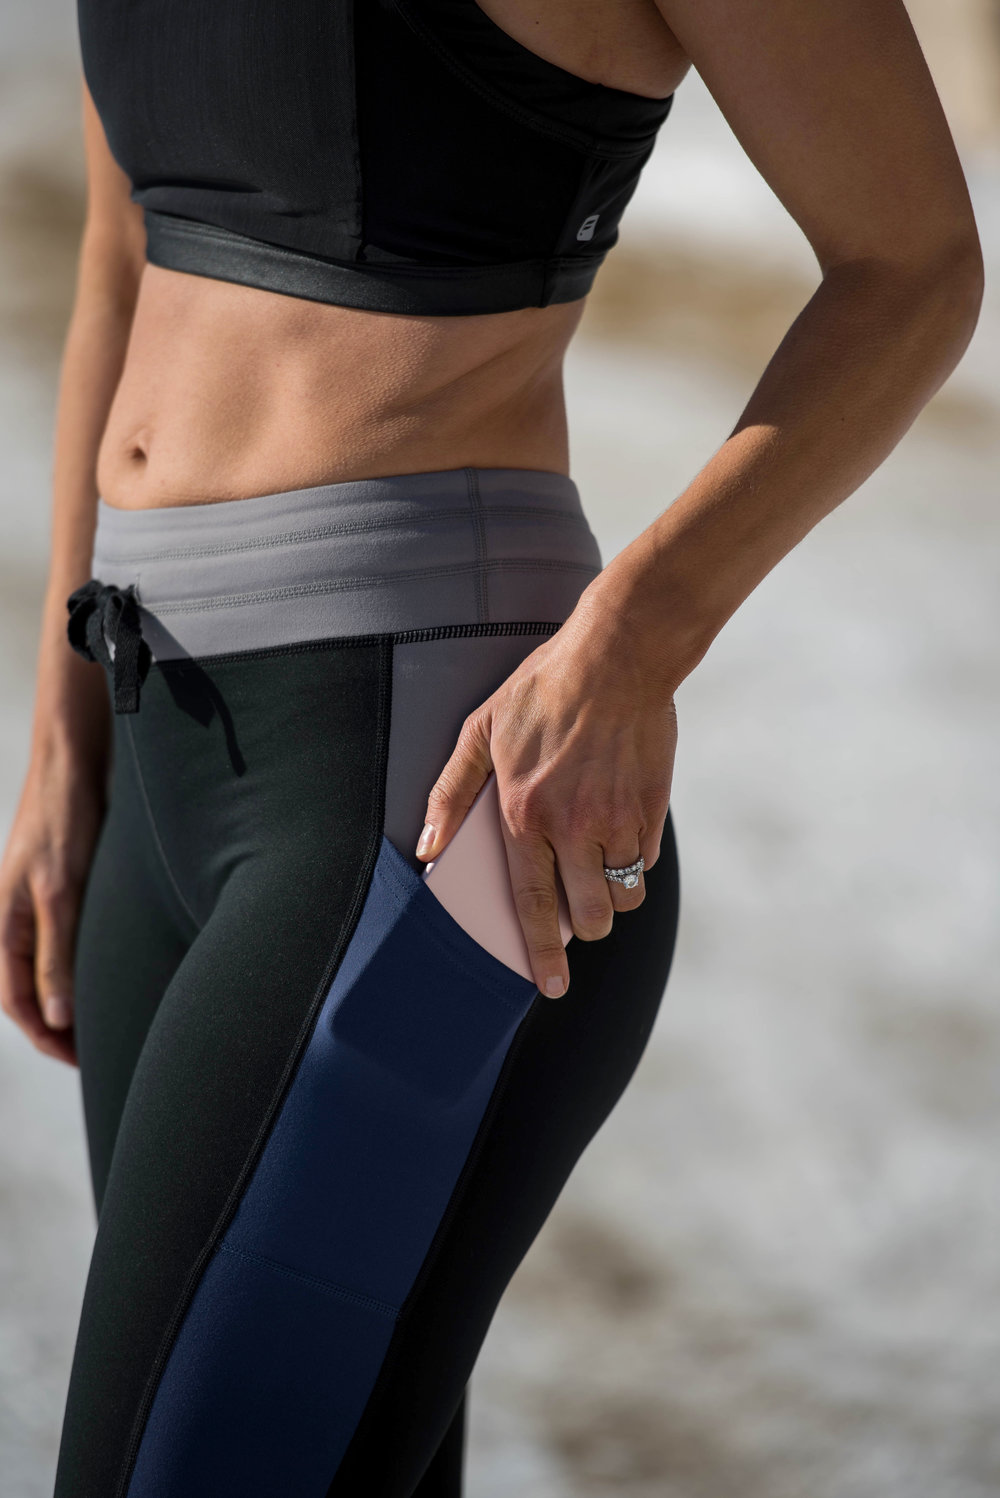 Workout Outfits - Fitness Outfits - Athleisure Outfits-  Fashion for Women - Fitness for Women - Fabletics Outfit  heartandseam.com  #heartandseam #fabletics